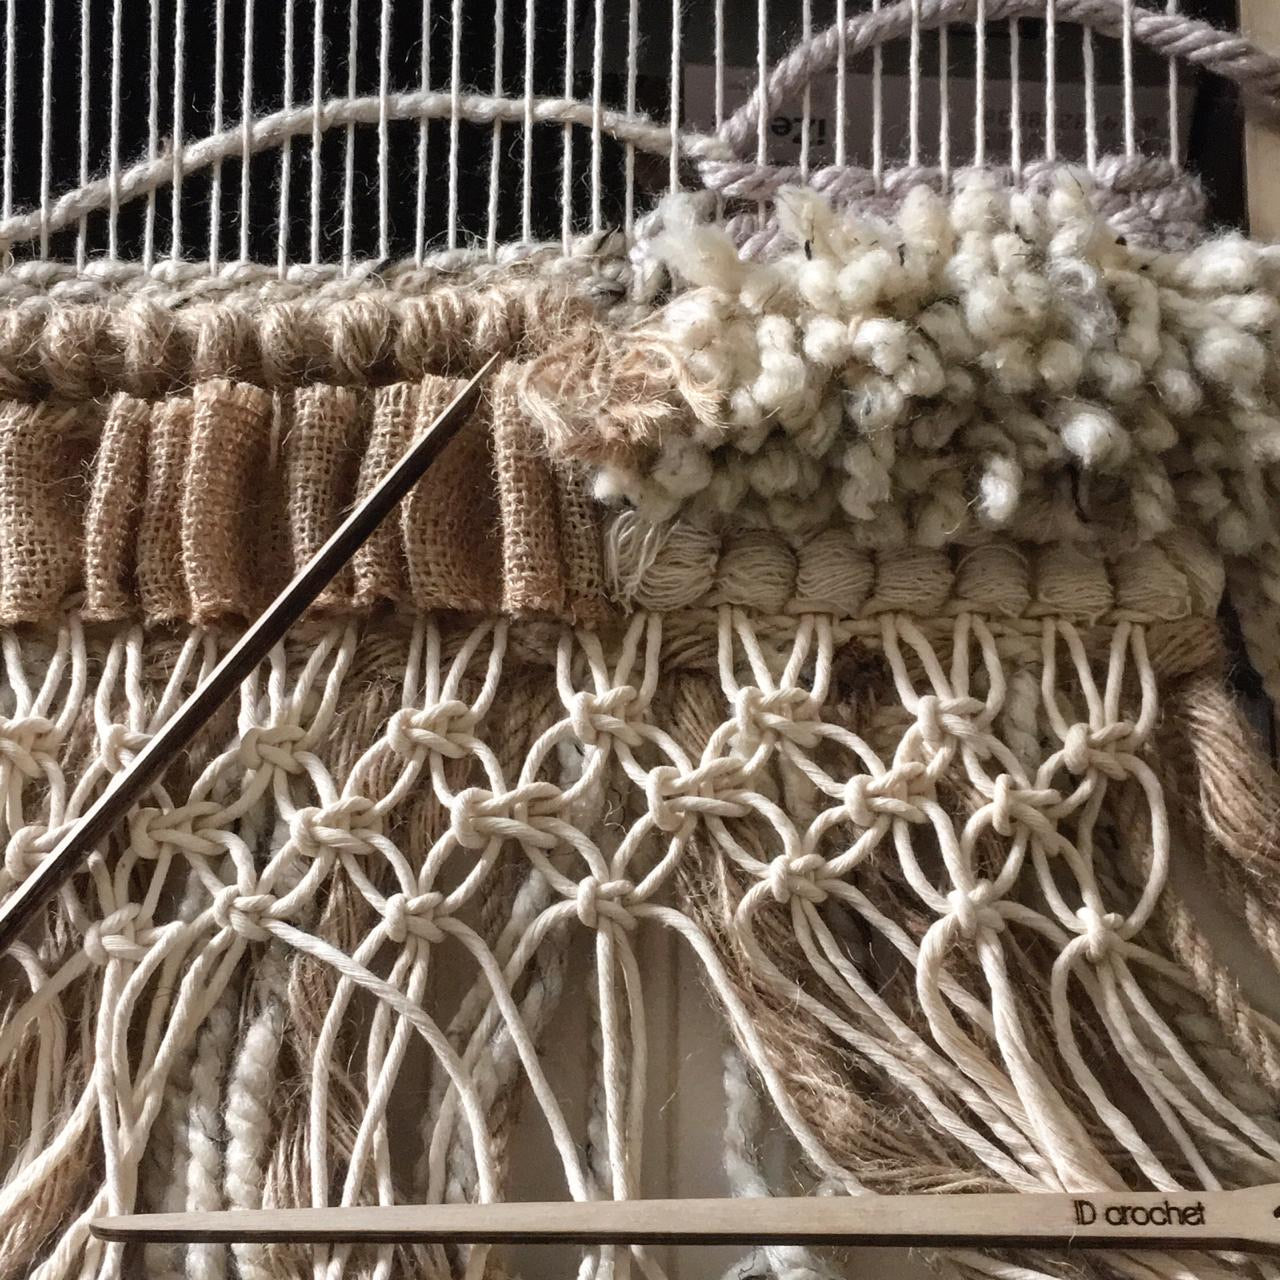 weaving workshop  |  december 5, 2020  |  10 am to 4 pm